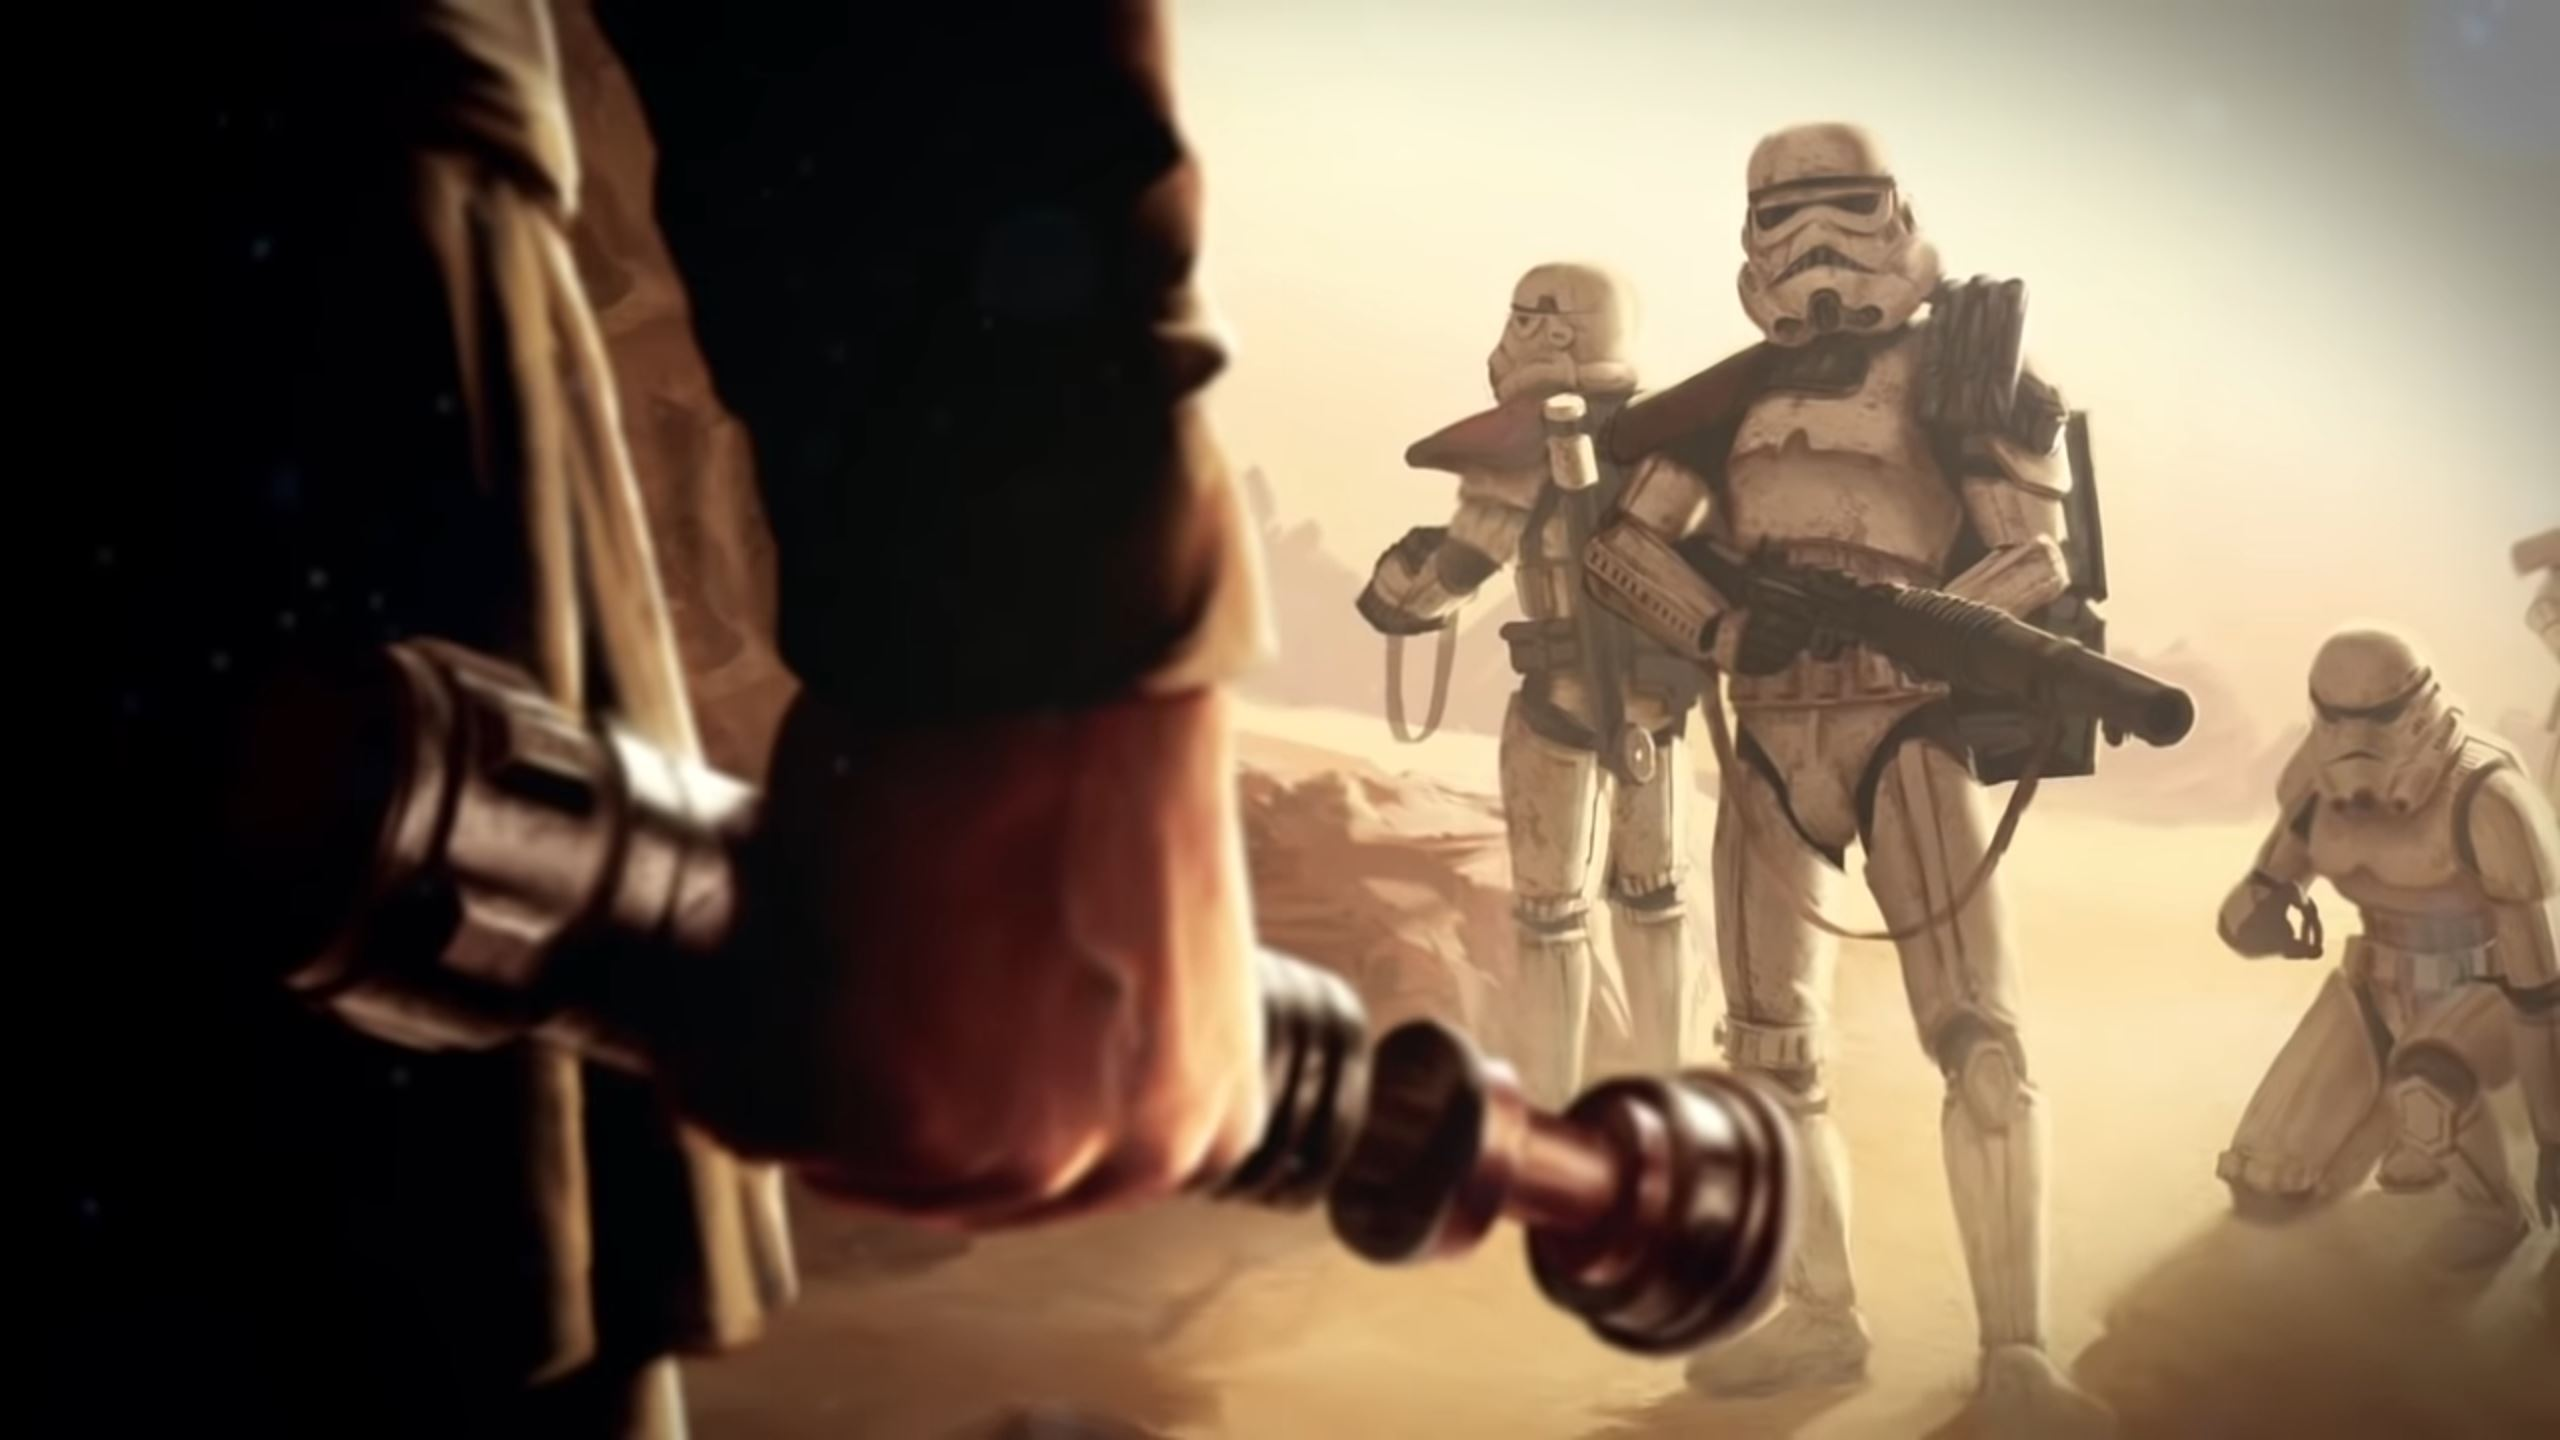 Luke Skywalker stares down a pair of hapless stormtroopers. His silhouette of his hand-made lightsaber takes up the foreground.